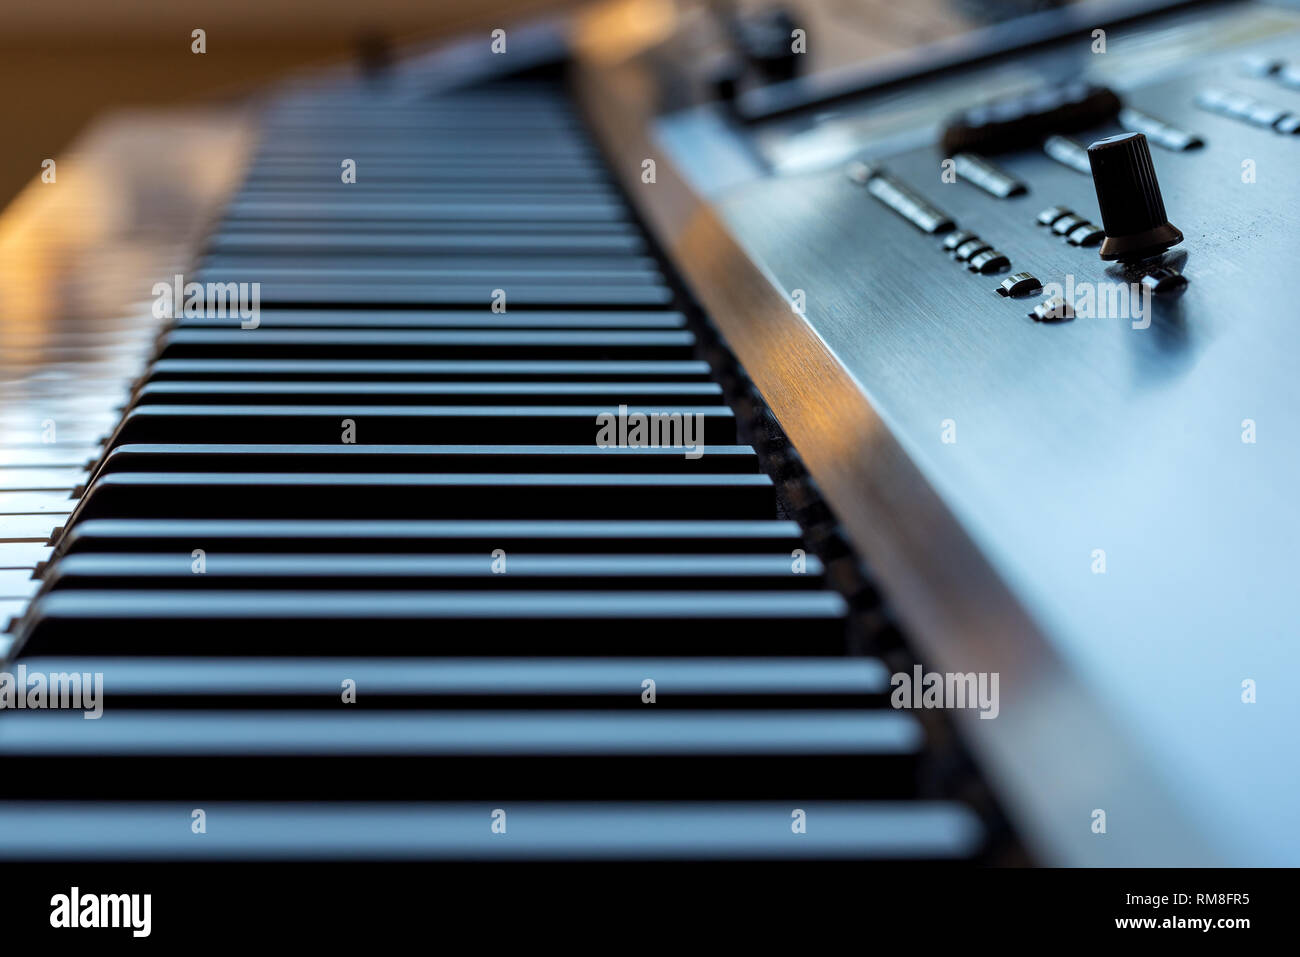 Midi keyboard synthesizer piano keys closeup for electronic music production - Stock Image